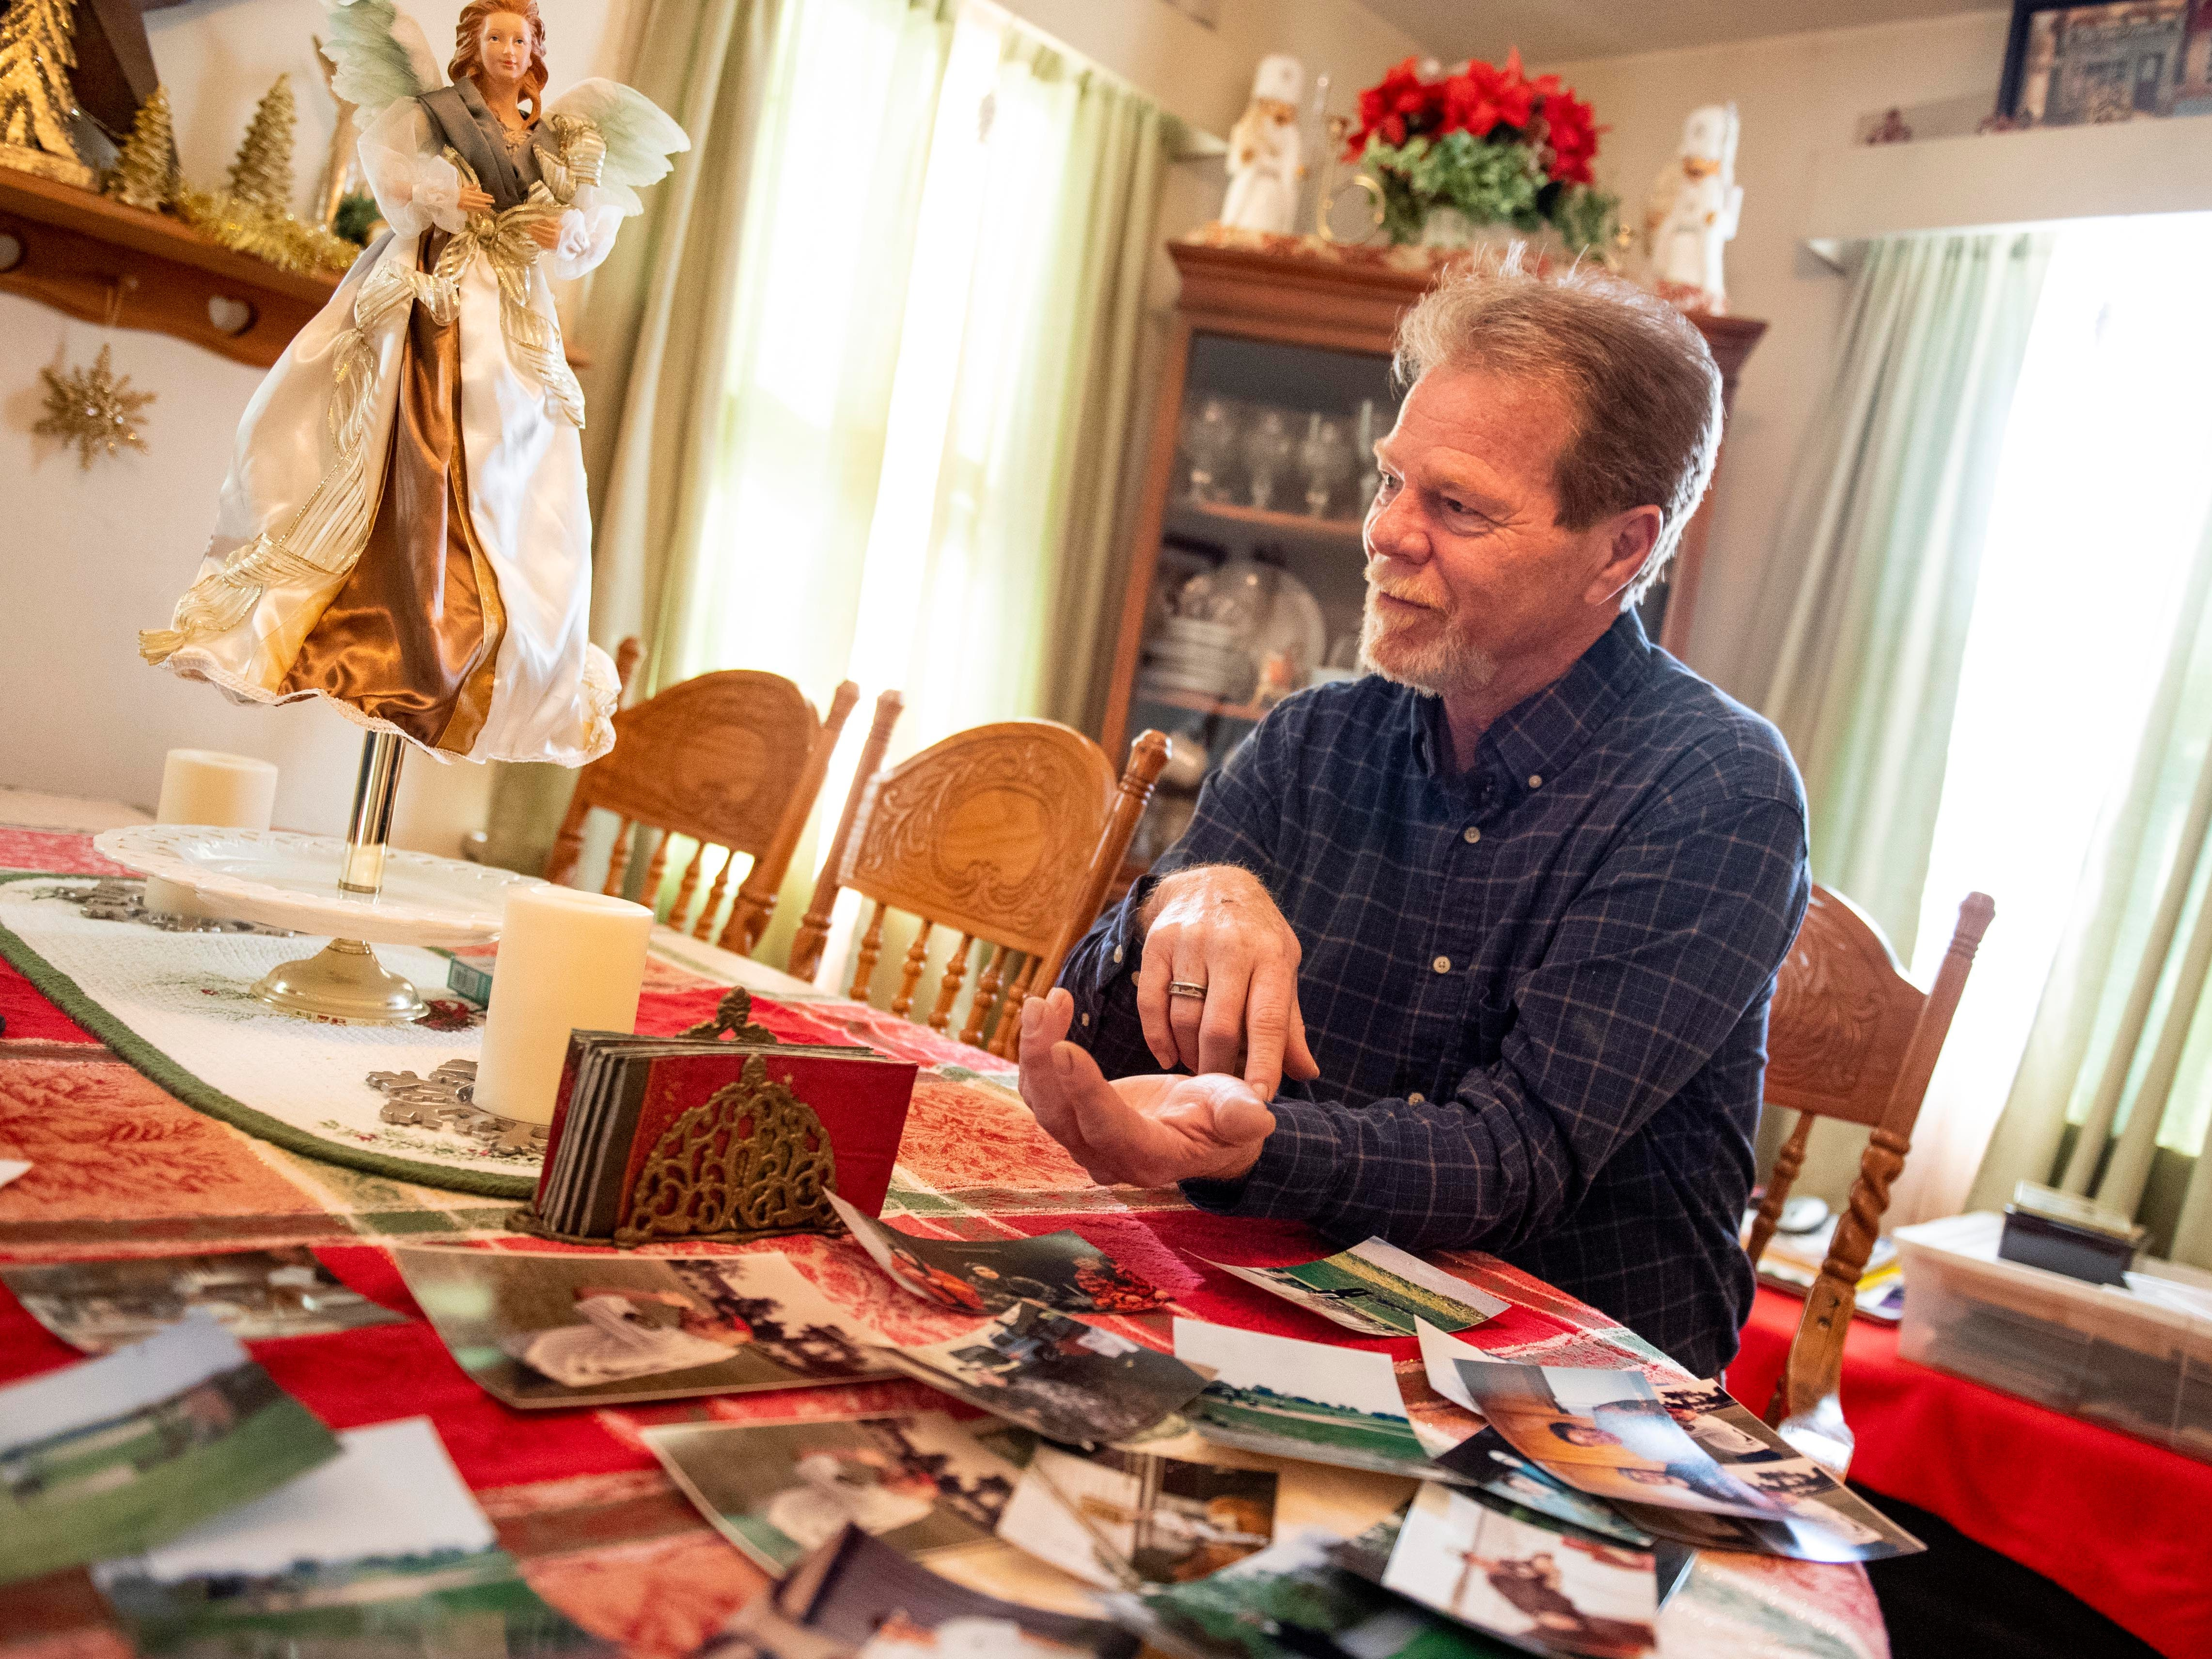 Sitting behind scattered photographs of his son, York City Police Officer Kyle Pitts, John Pitts talks about Kyle's recovery, his attitude toward it, and Kyle's determination to get back to serving his community. Kyle was shot in the arm in January 2018 while serving a warrant in Harrisburg with the U.S. Marshals. His teammate, U.S. Marshal Christopher Hill, died in the shootout.